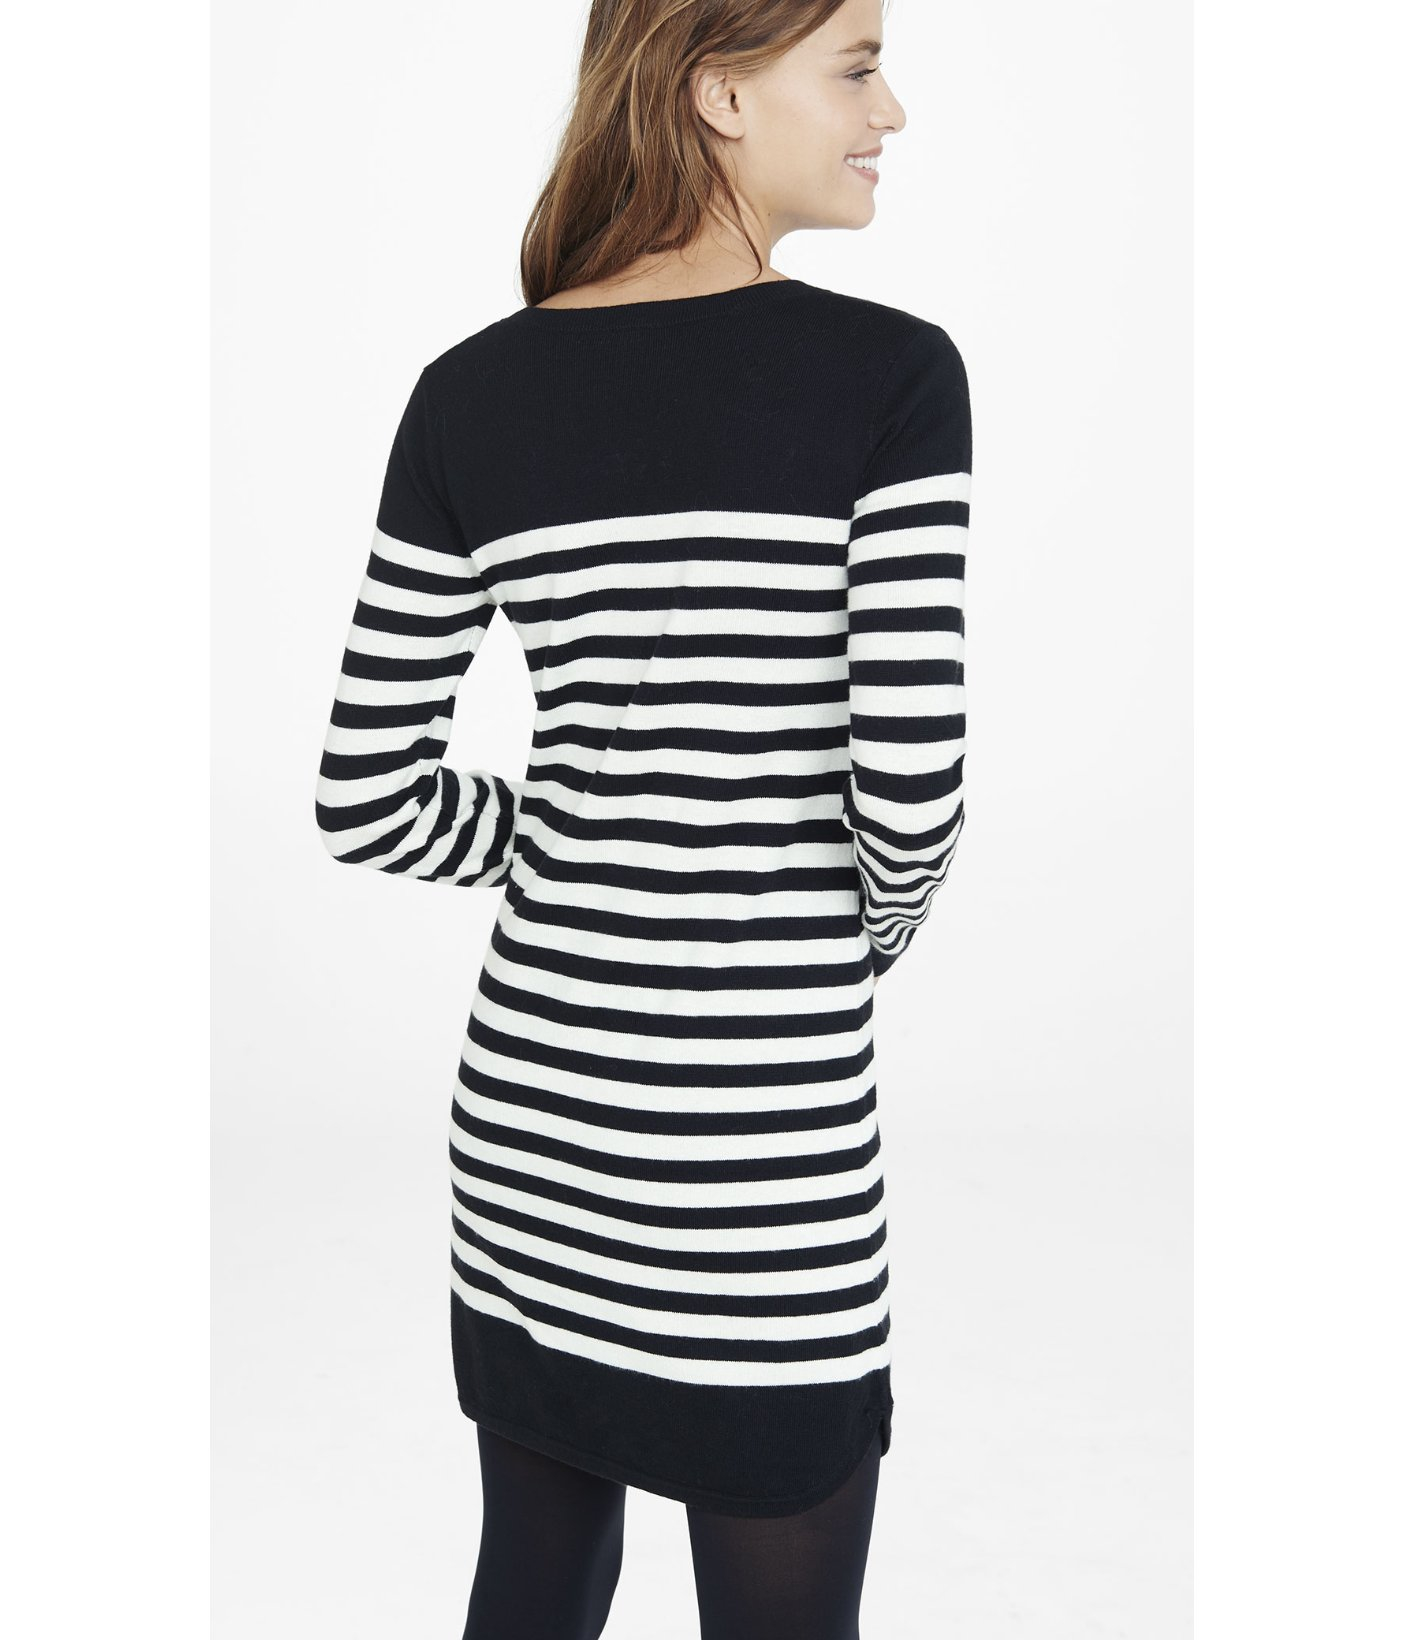 Lyst Express Black And White Striped Sweater Dress In Black